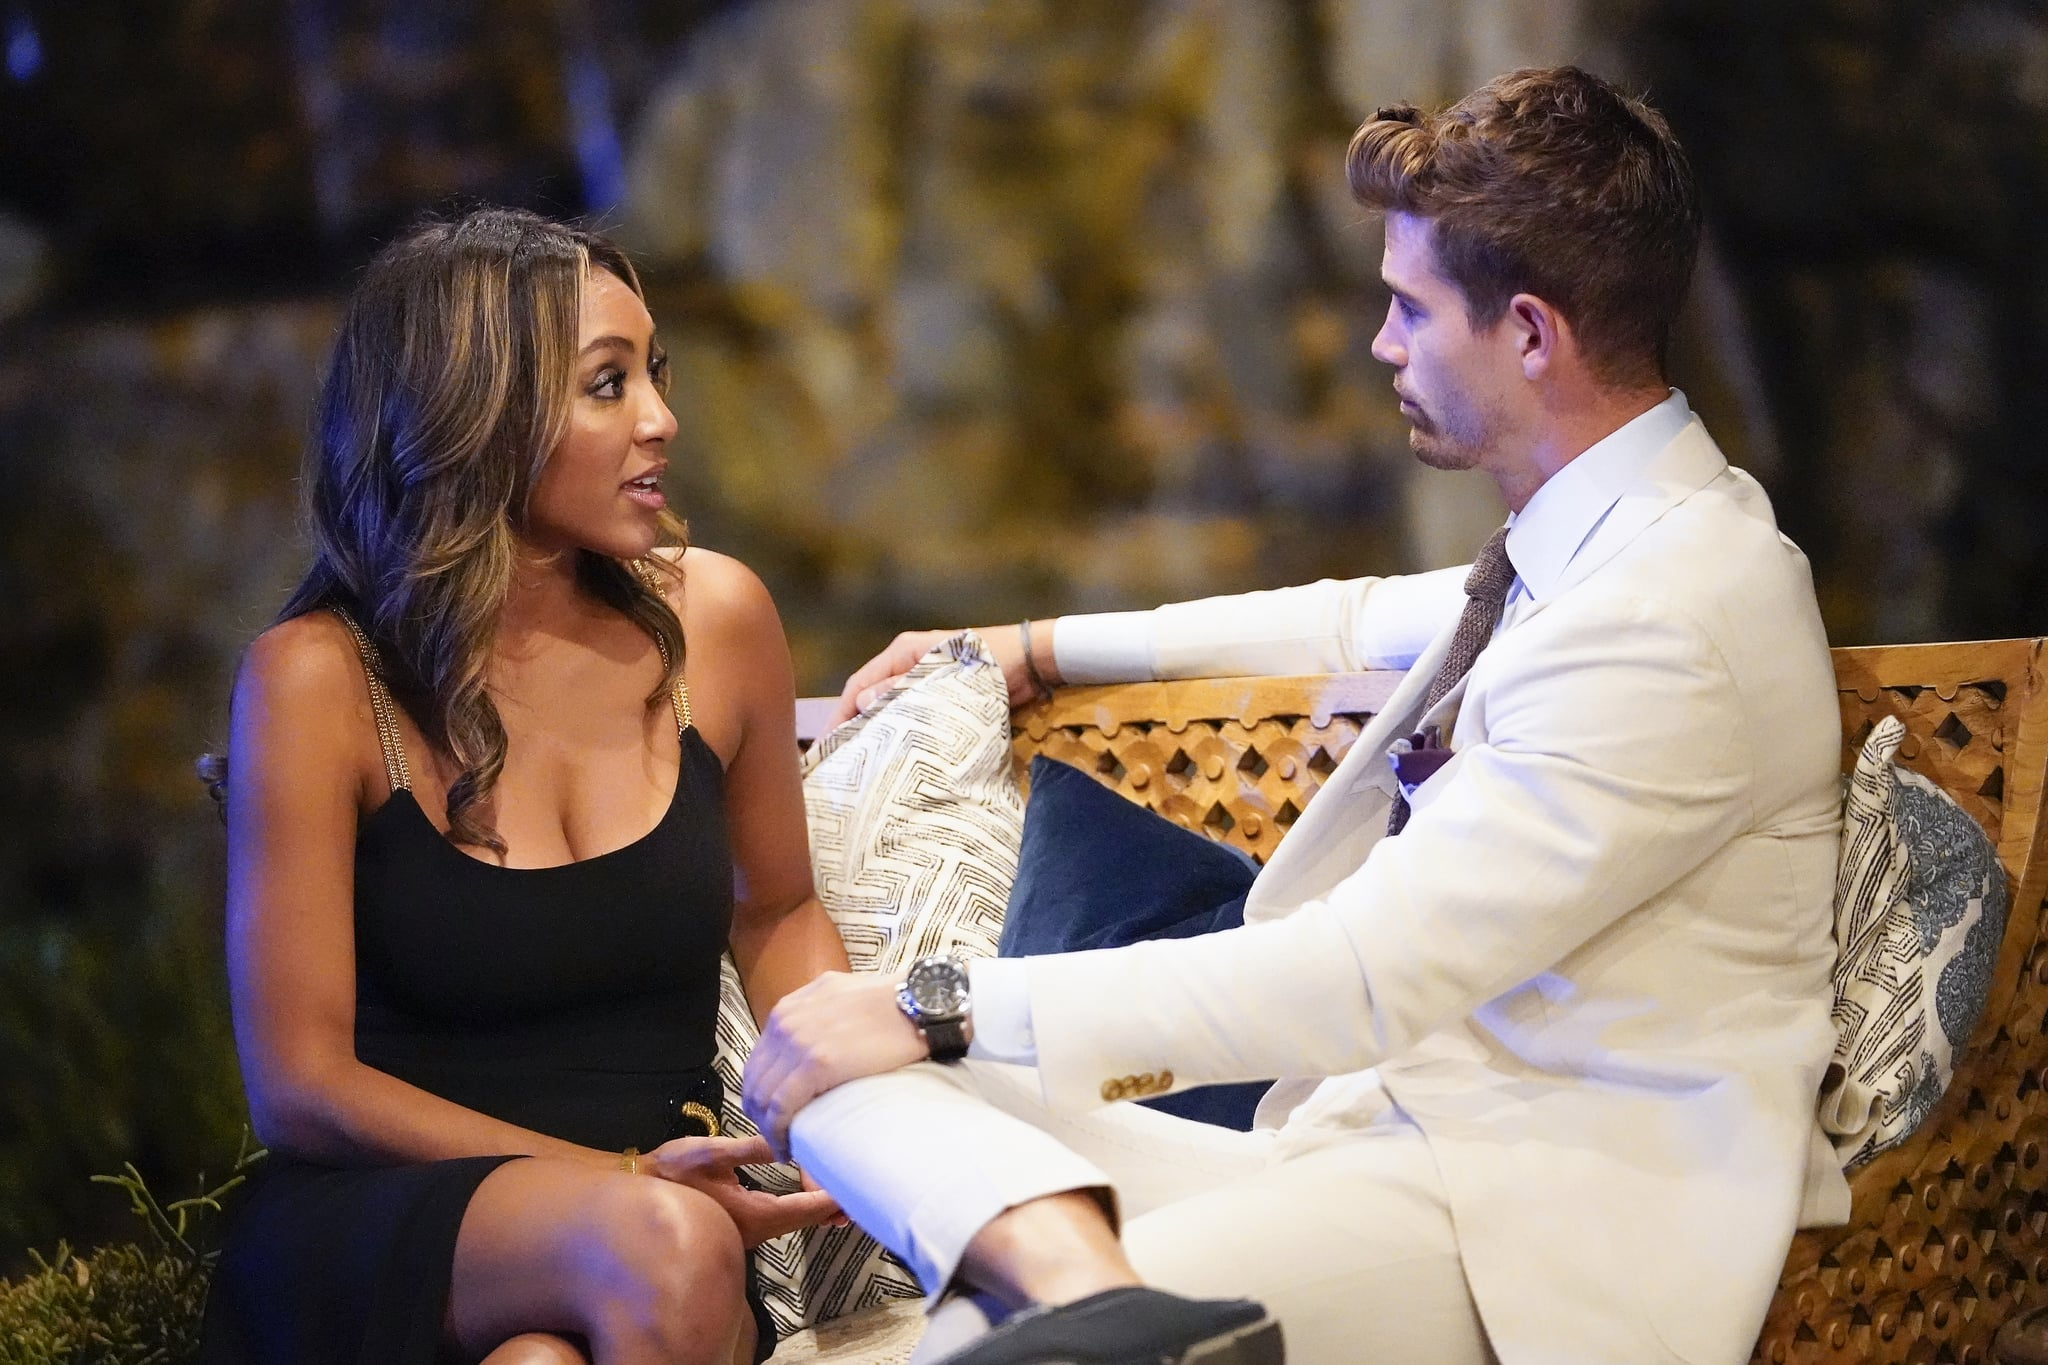 THE BACHELORETTE - 1606  Its game on! when Ashley I. and Jared pay a special visit to Tayshia, running and judging a competition to test the strength and maturity of eight of her suitors. Who will win the coveted title, and who will struggle to the finish line? Dramatic faceoffs between the men prove a distraction, but the Bachelorette manages to squeeze in some romance. Refusing to give up, two hotheaded rivals try to pull Tayshia into the fray right before the rose ceremony. A group of the guys will be coached by former four-time Womens Champion and WWE Hall of Famer Amy Dumas and current undefeated UFC fighter Tatiana Suarez through wrestling drills to prepare for a big match in front of the men not on the date. Fan-favorite Wells Adams calls the wild action with Chris Harrison. Who will fight for Tayshias heart and emerge victoriously? Finally, one smooth move will cement a bachelors status as public enemy number one with the other jealous men on The Bachelorette, TUESDAY, NOV. 17 (8:00-10:01 p.m. EST), on ABC (ABC/Craig Sjodin)TAYSHIA ADAMS, CHASEN